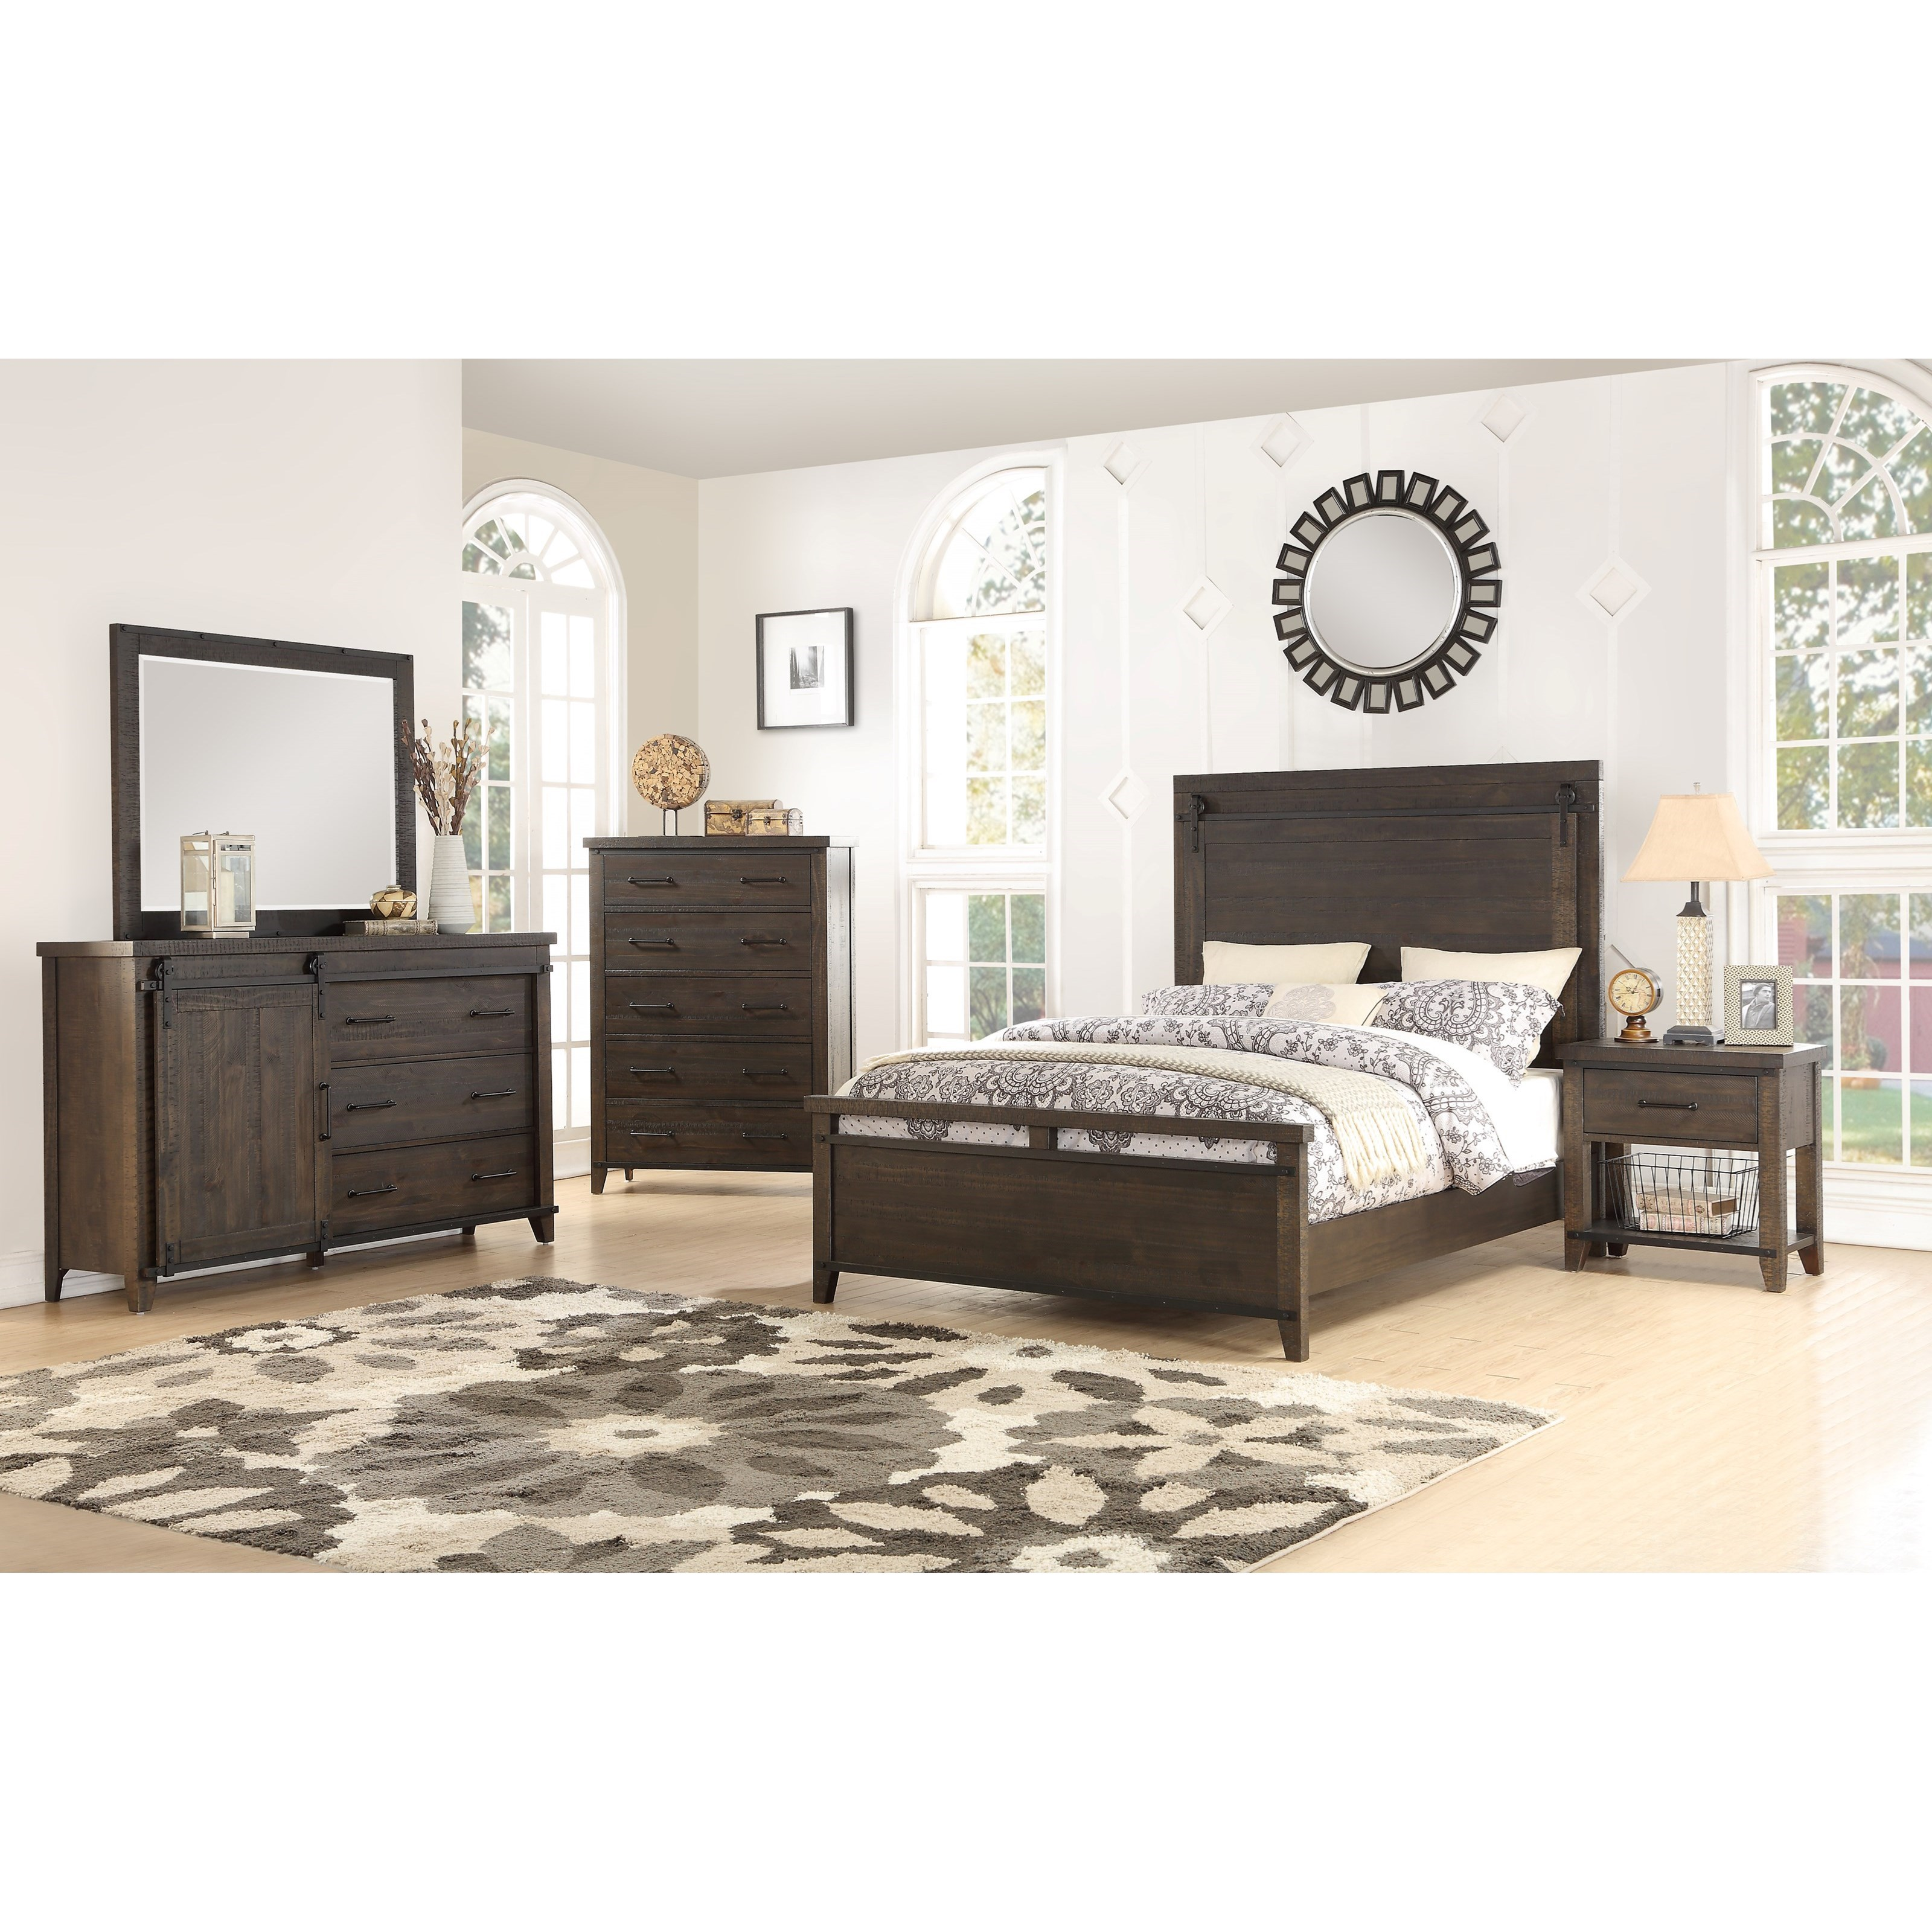 Durango 5 Piece King Bedroom Group by HH at Walker's Furniture